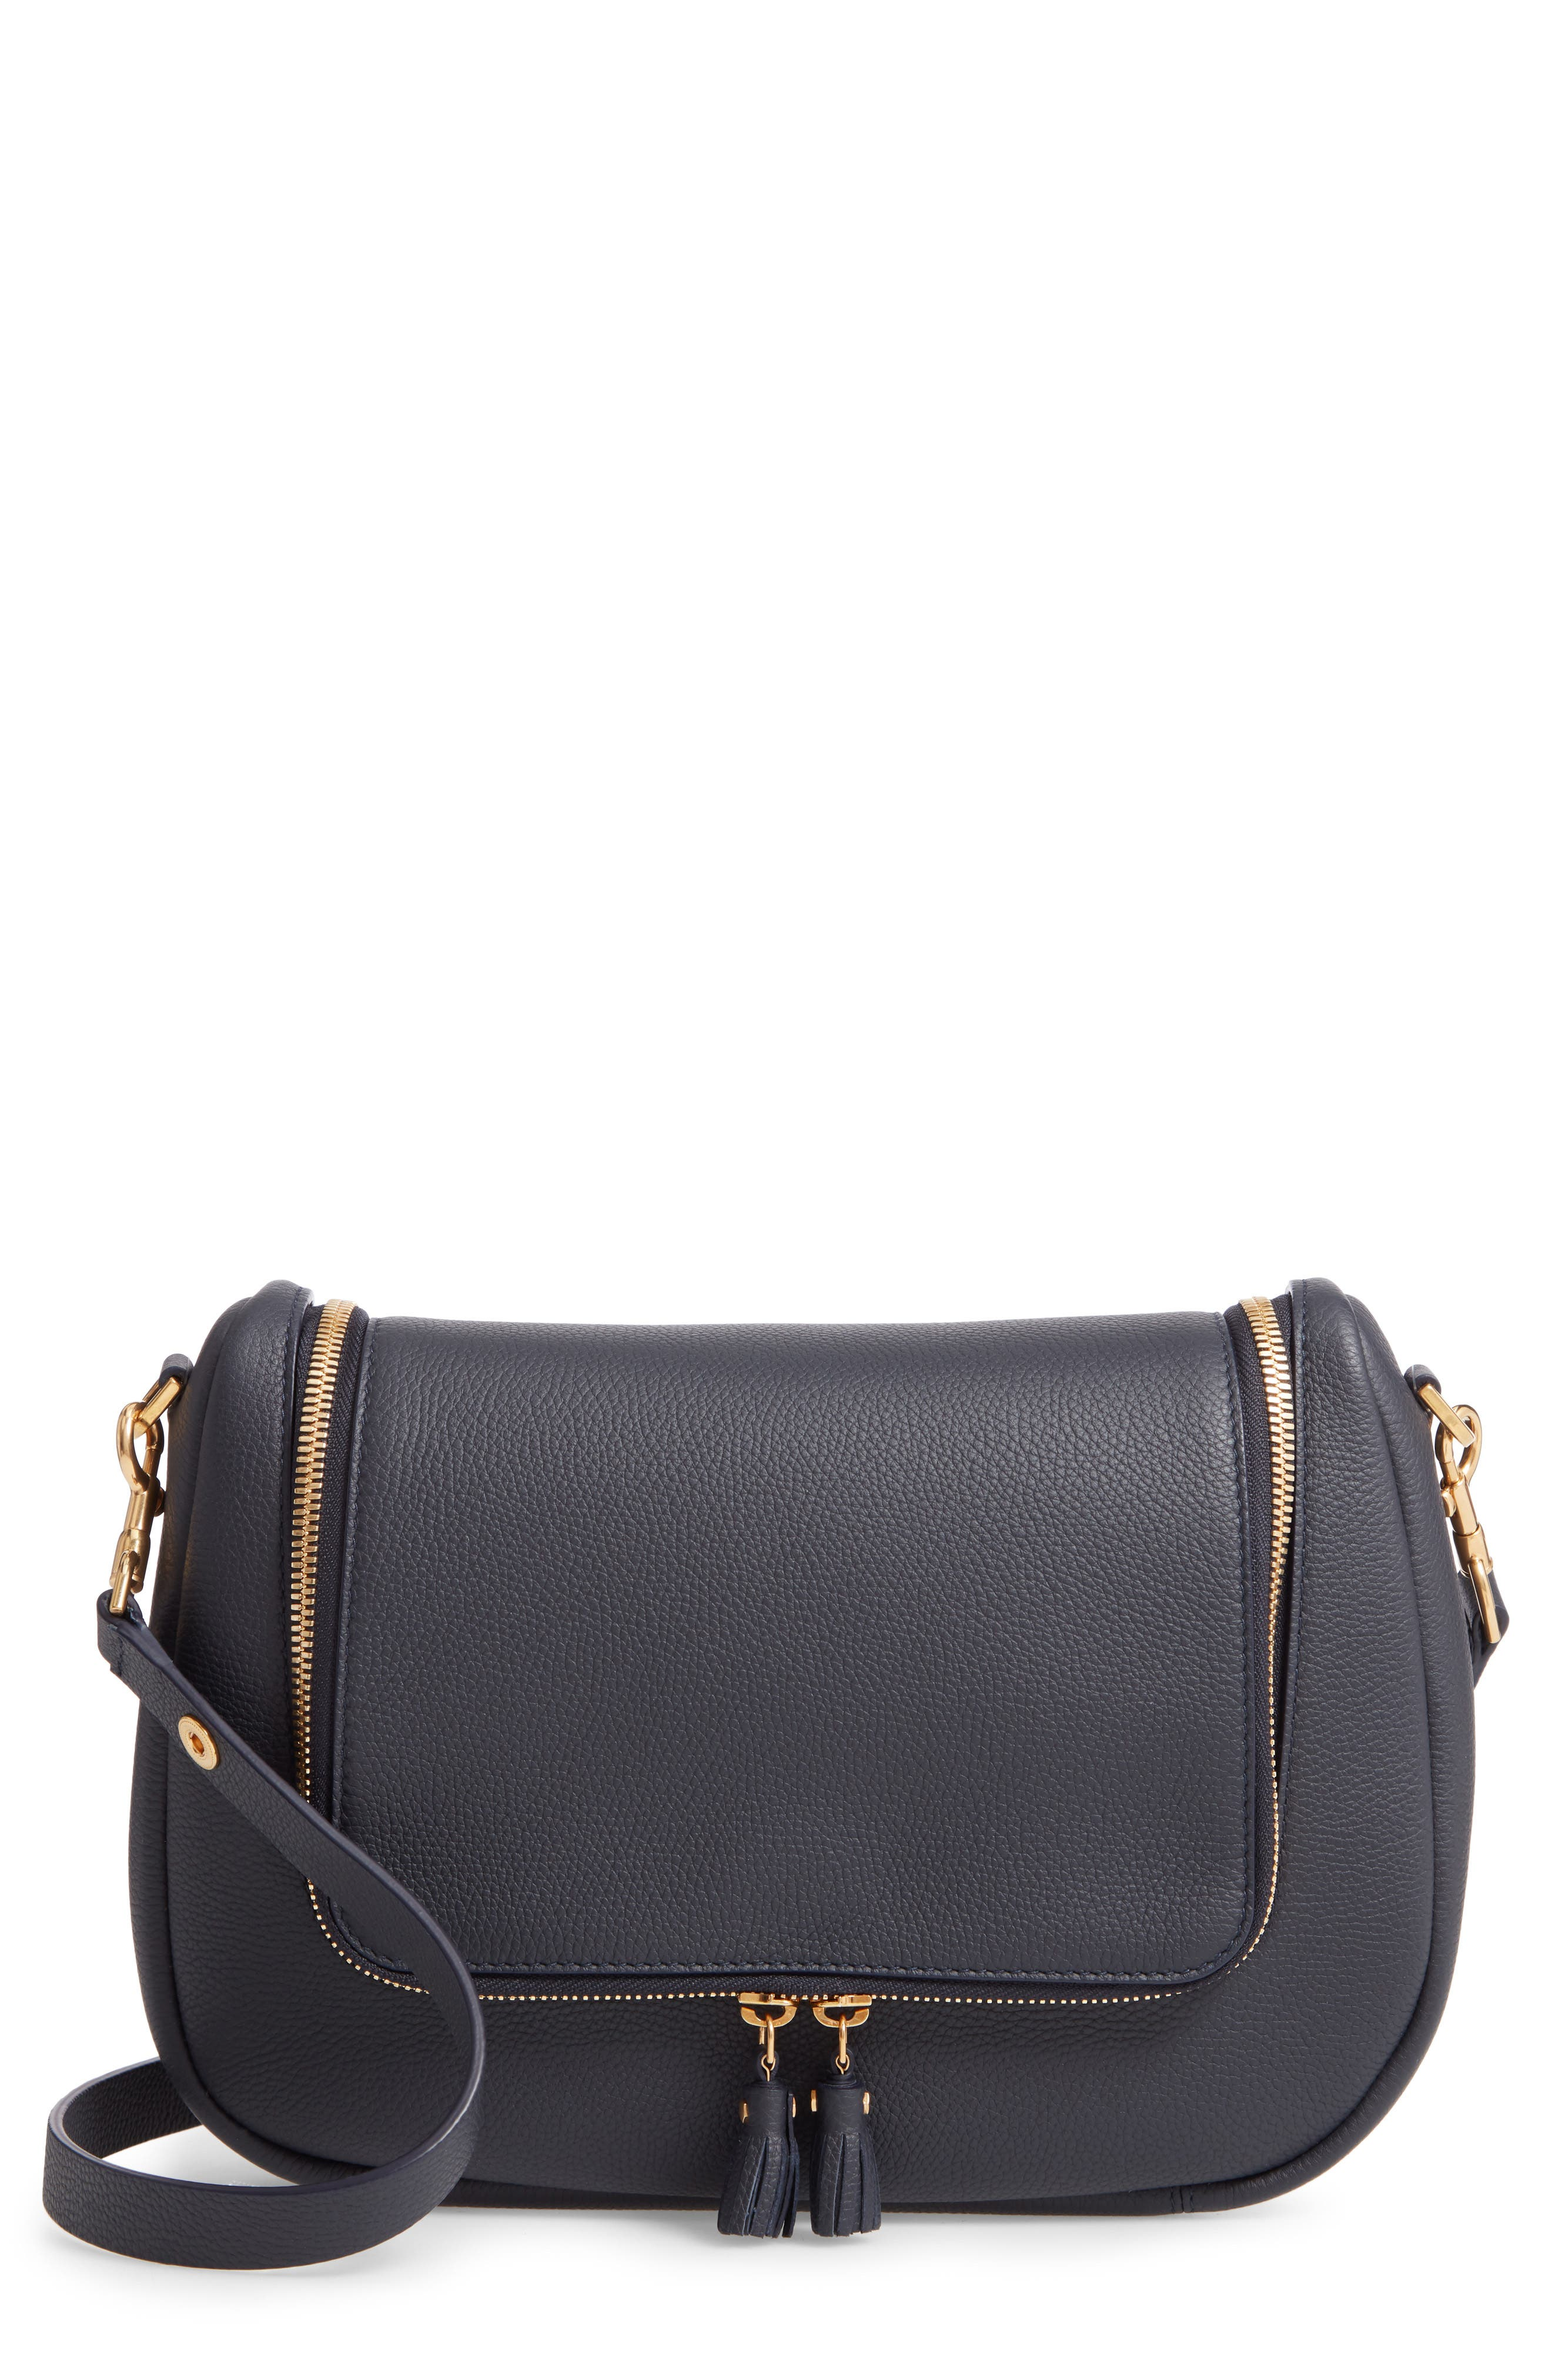 Mini Vere Leather Shoulder Satchel - Blue in Marine